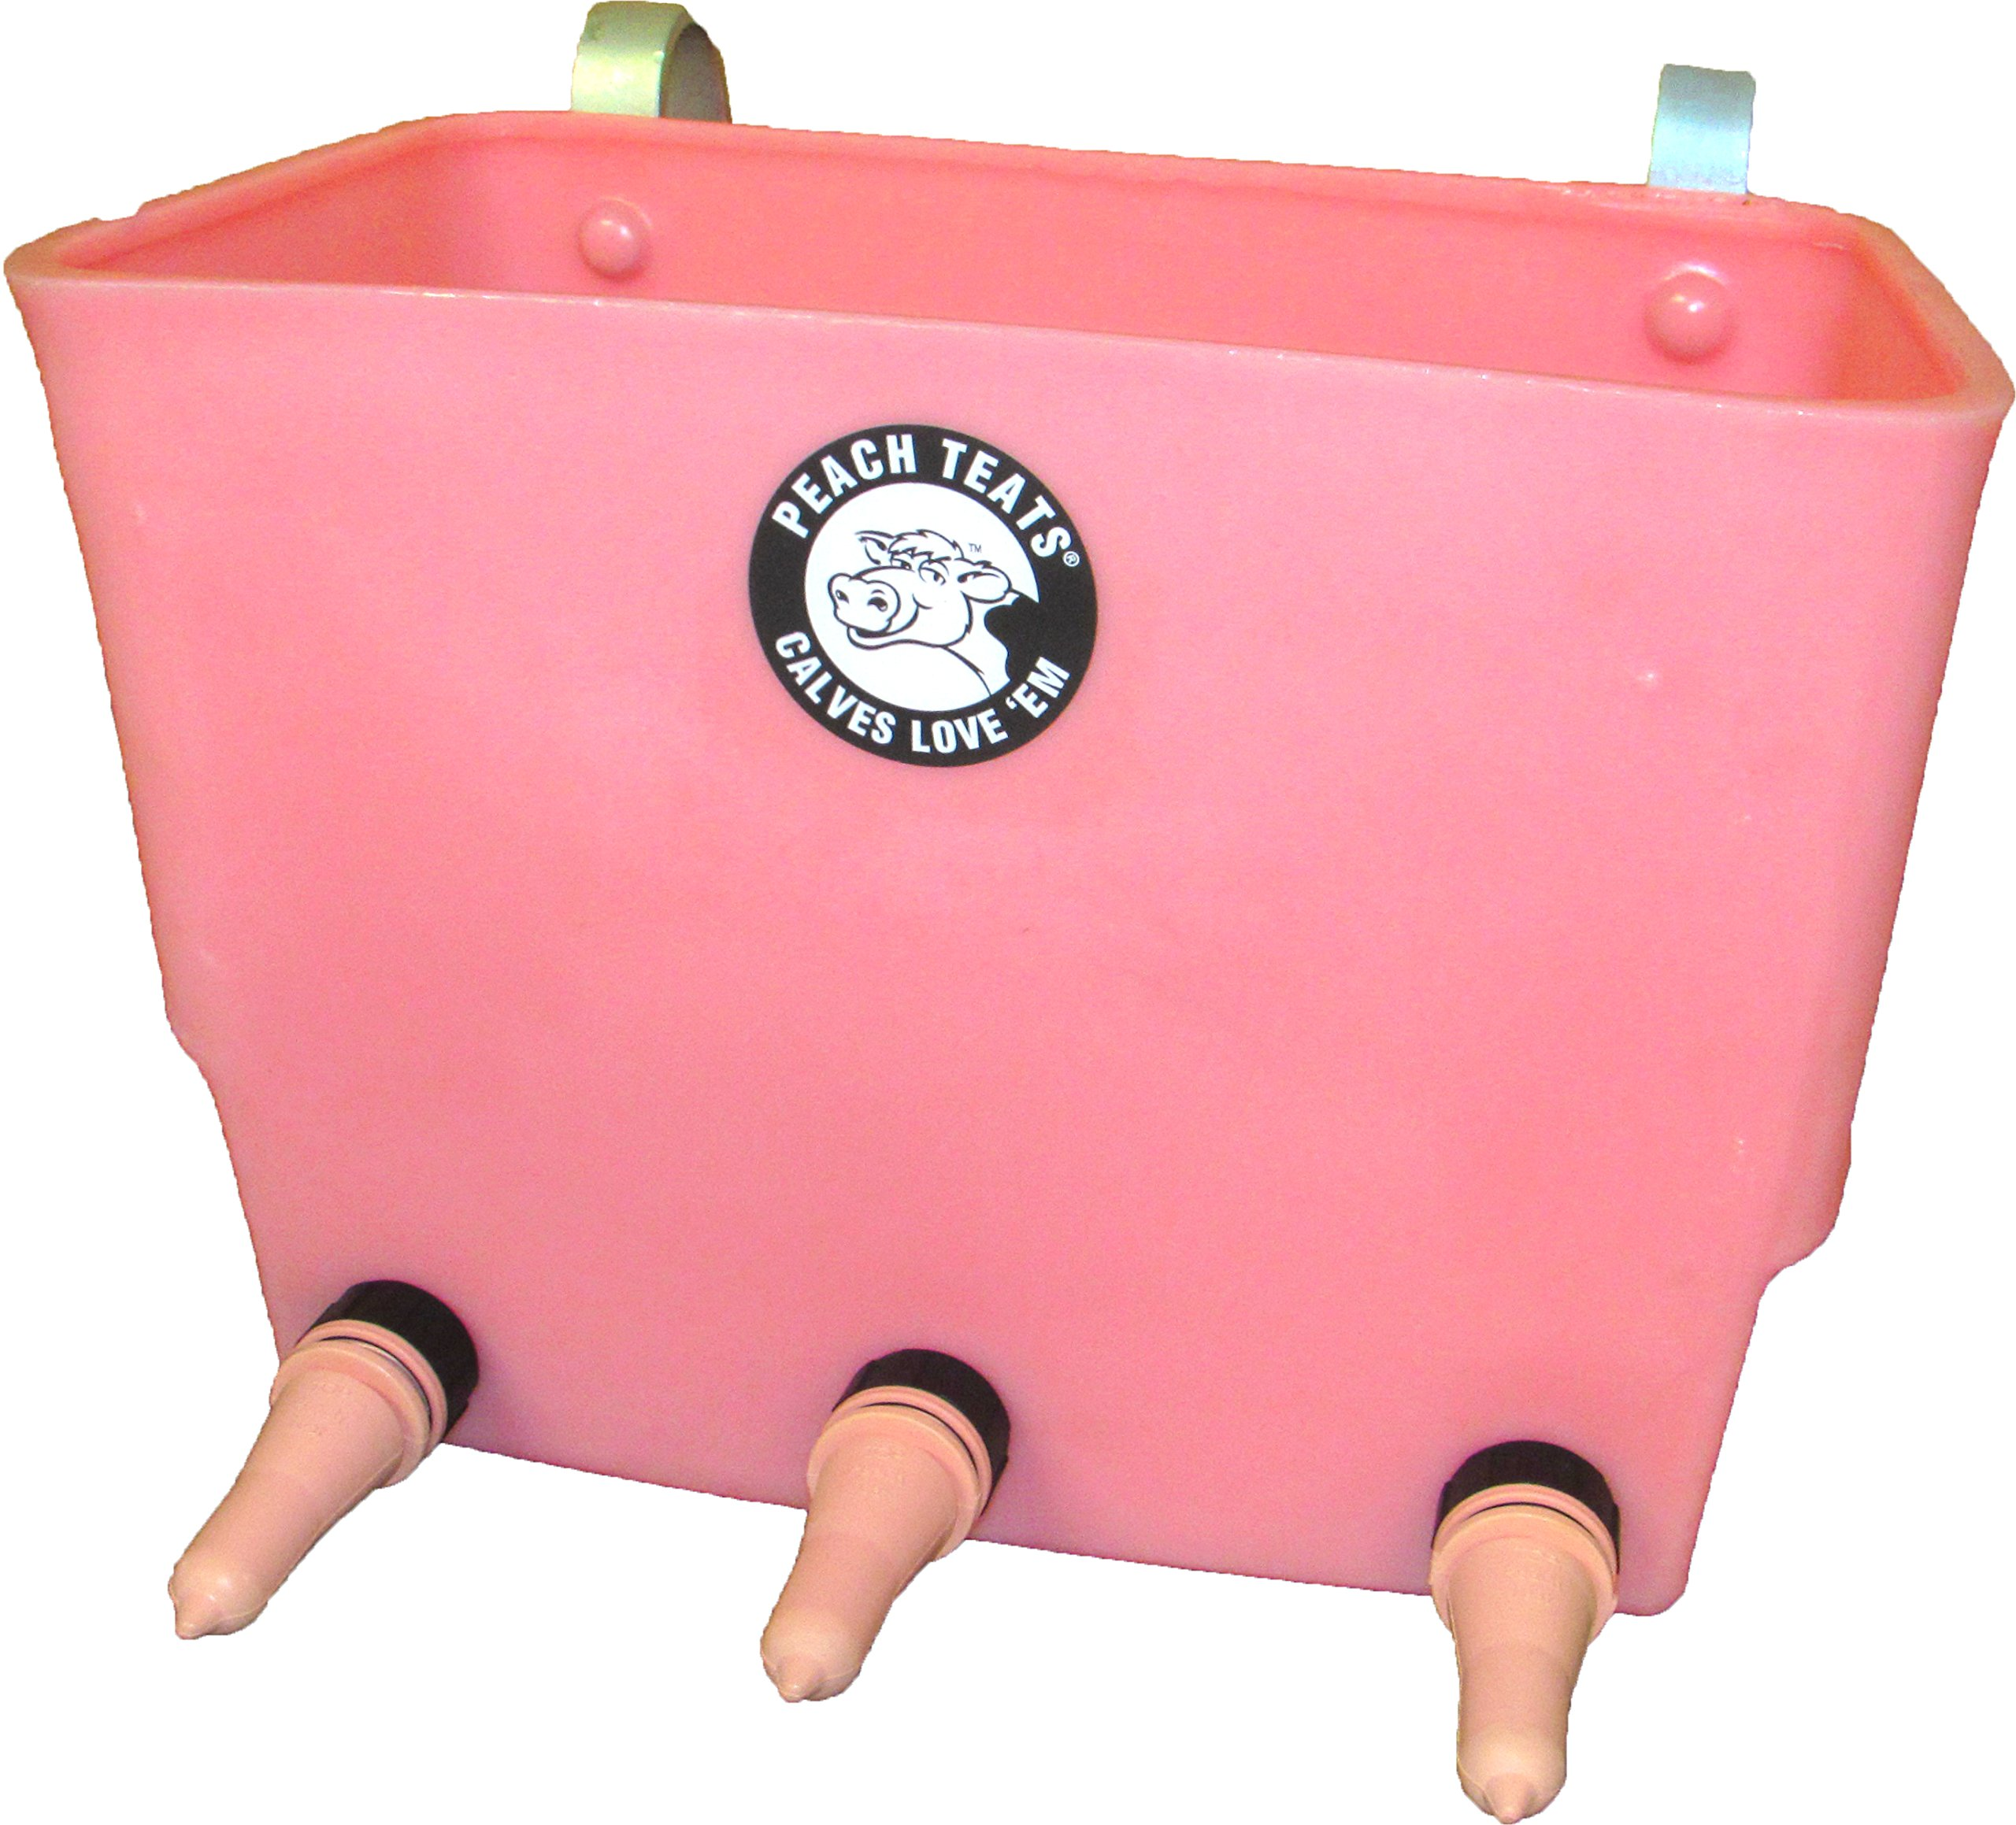 3 Teat Feeder Complete, Pink by Peach Teats